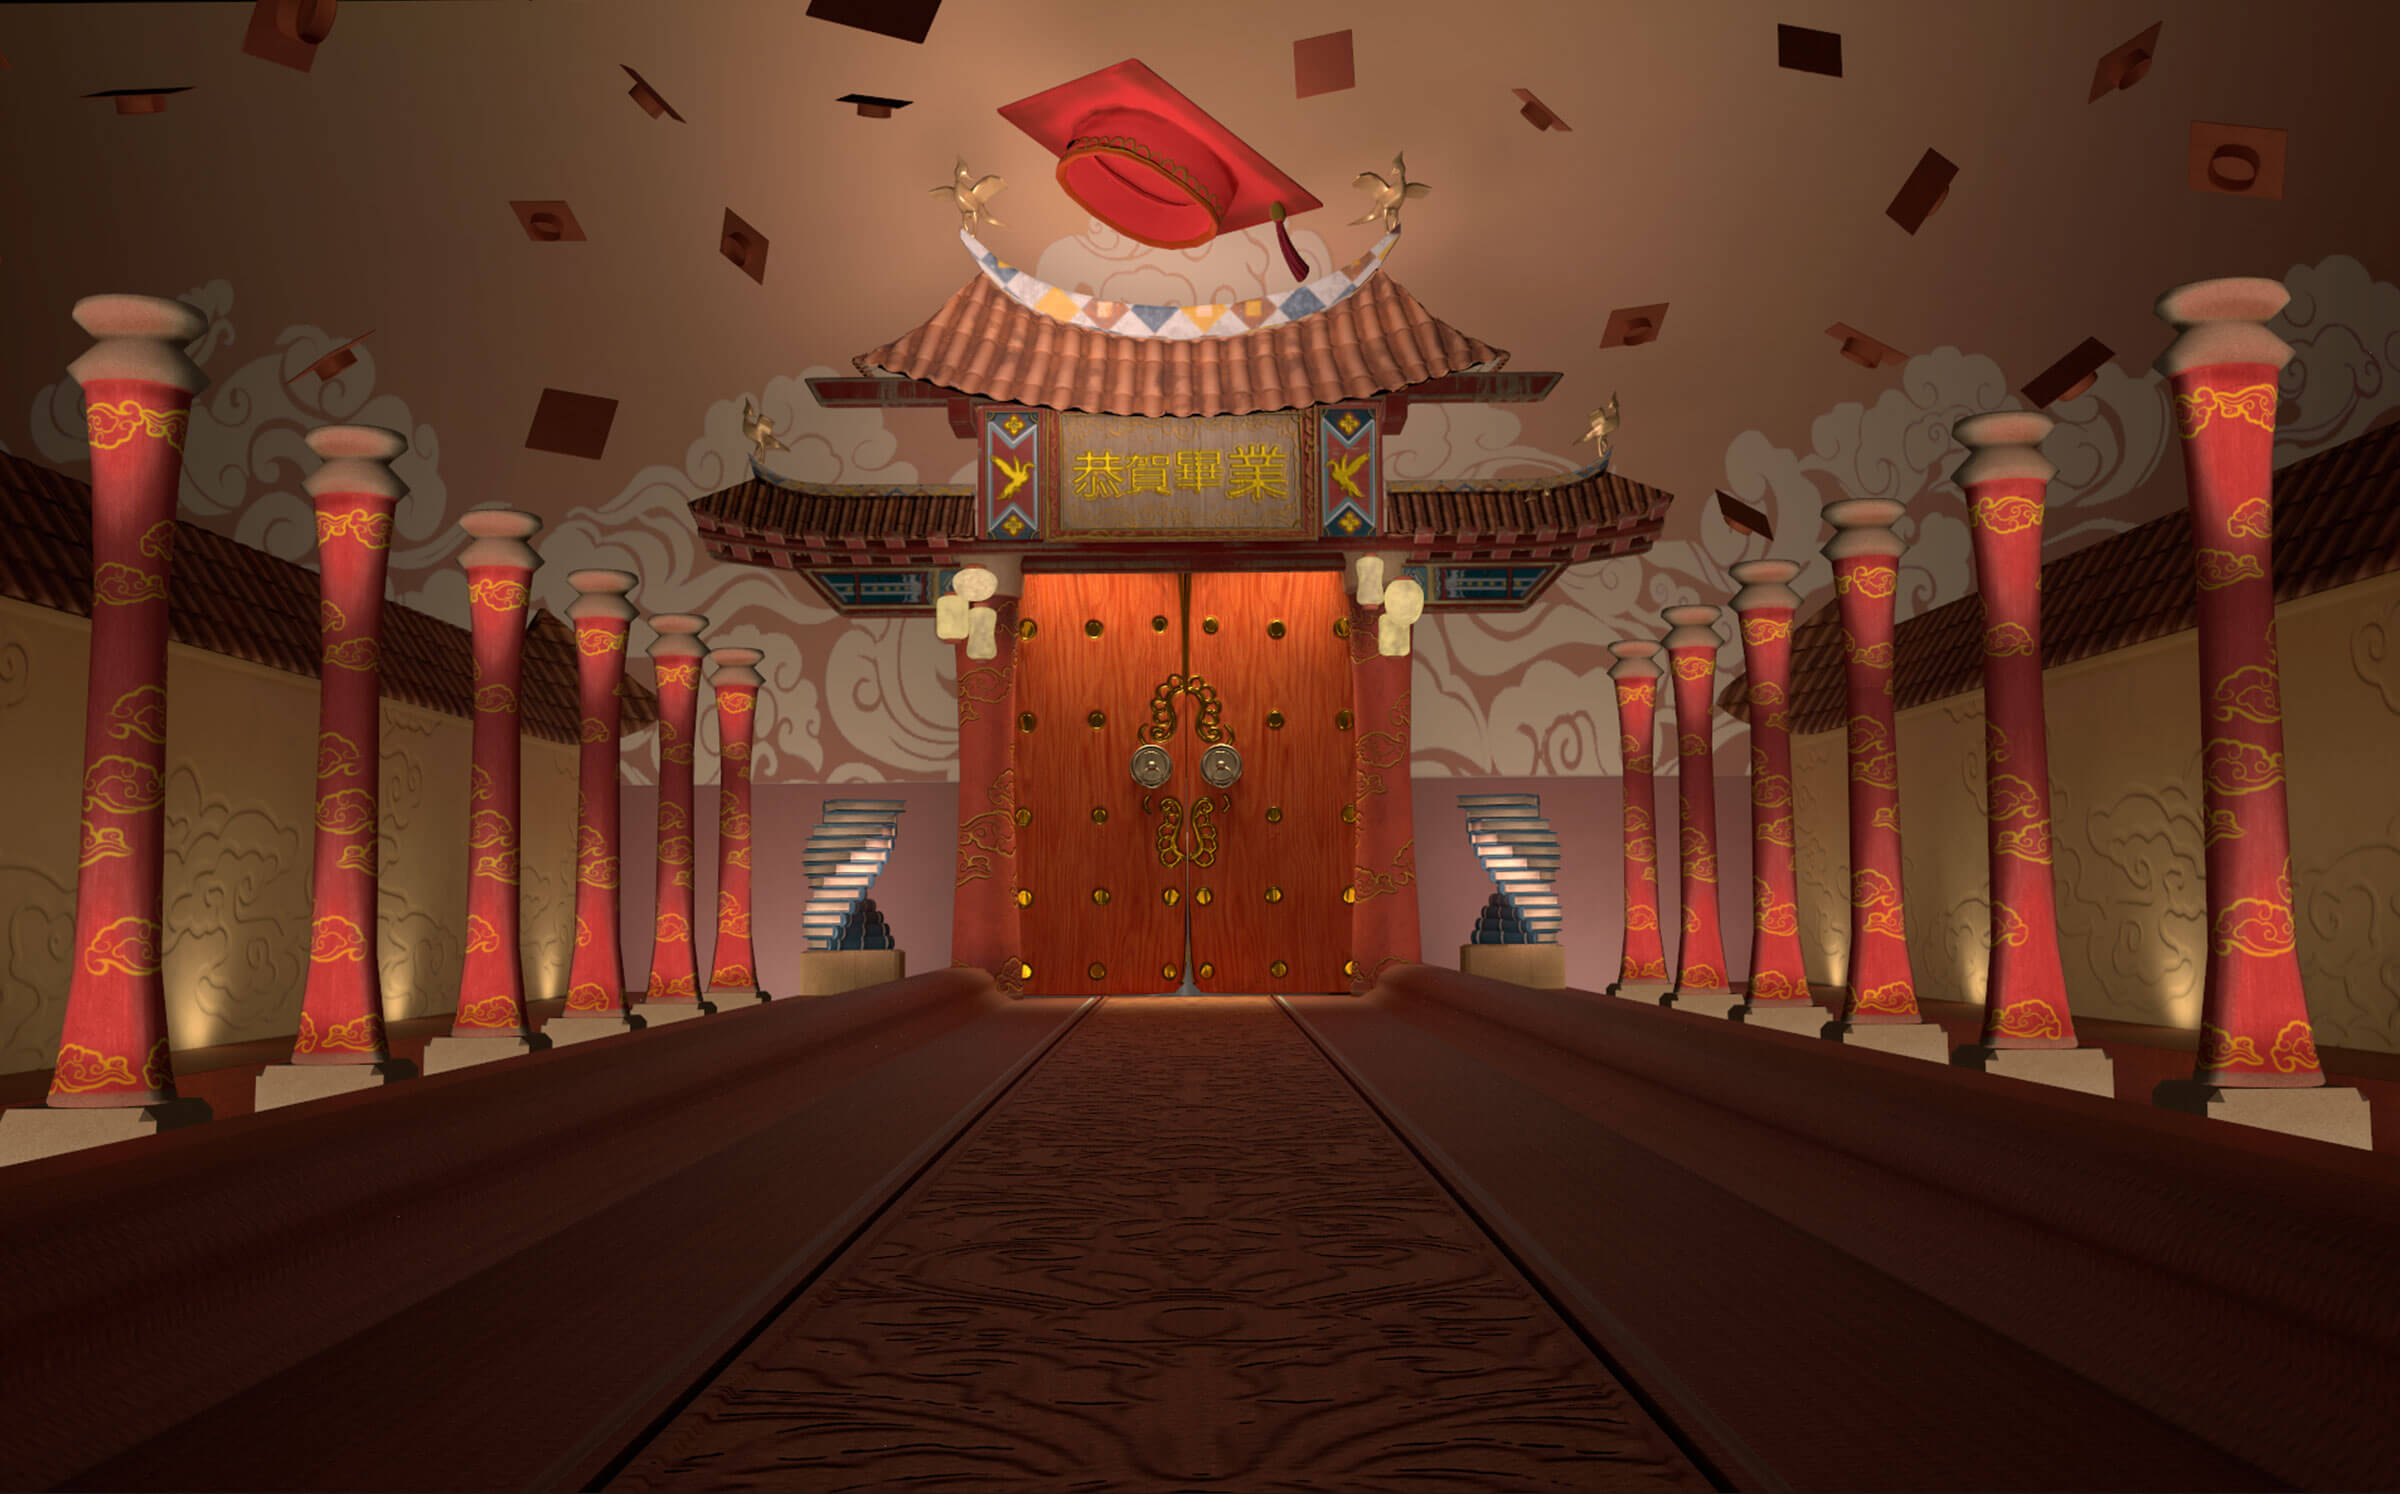 East-Asian-styled hallway with mortarboards in the air